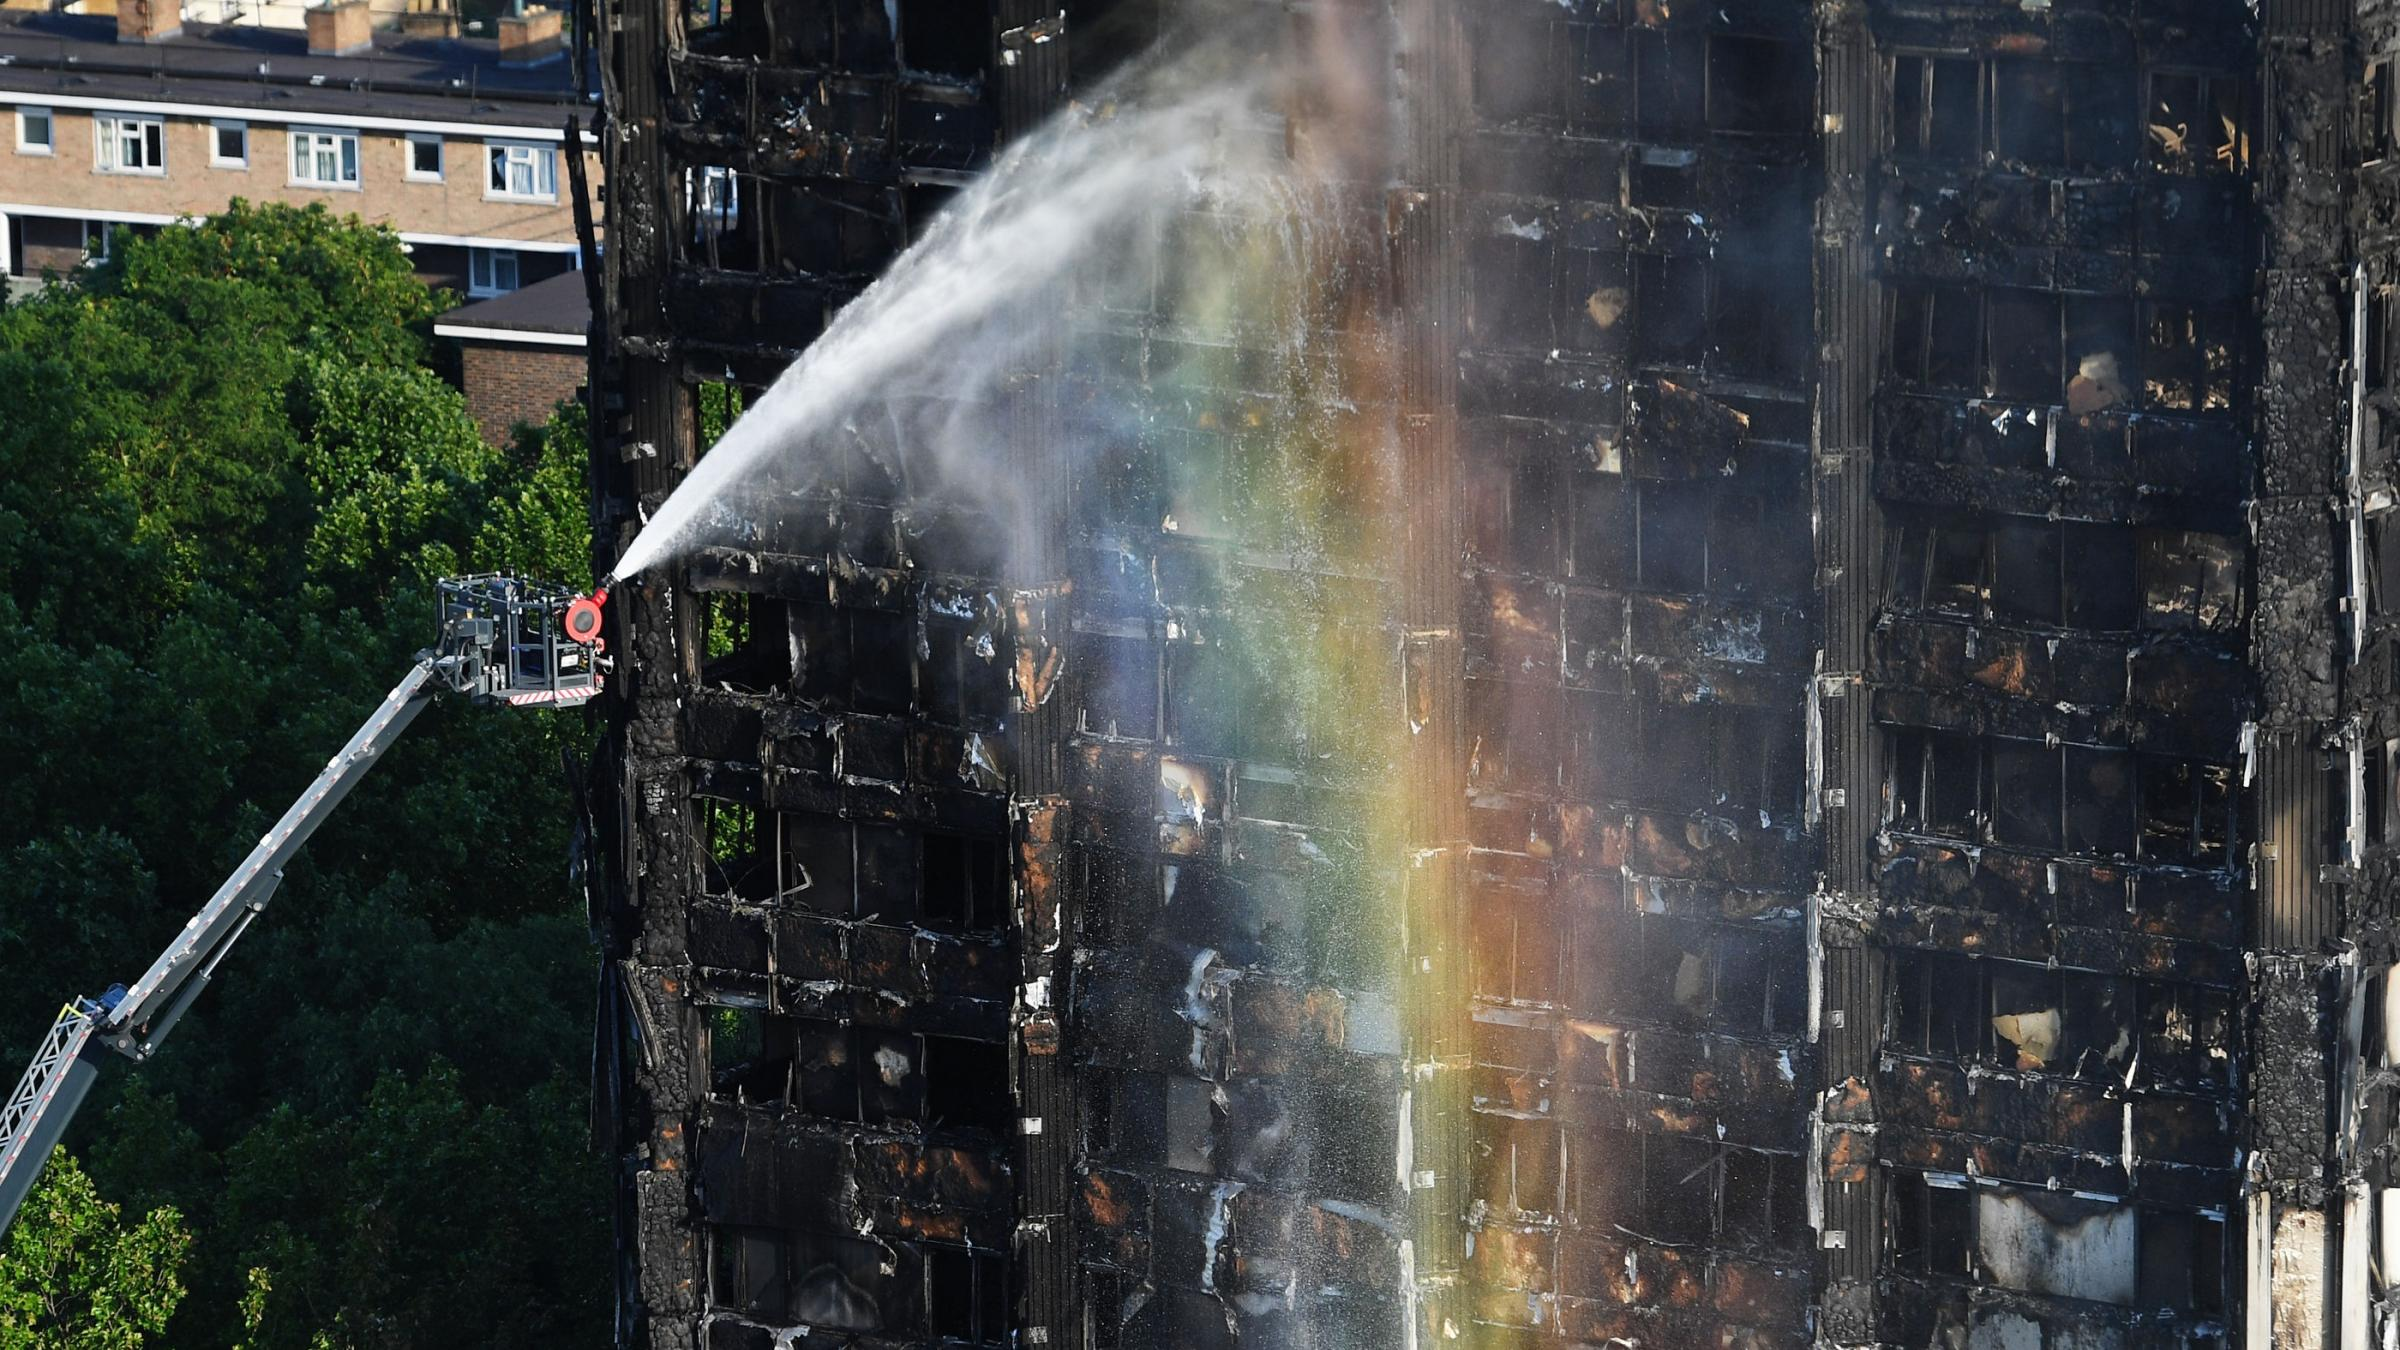 London fire death toll rises to 17, number expected to increase